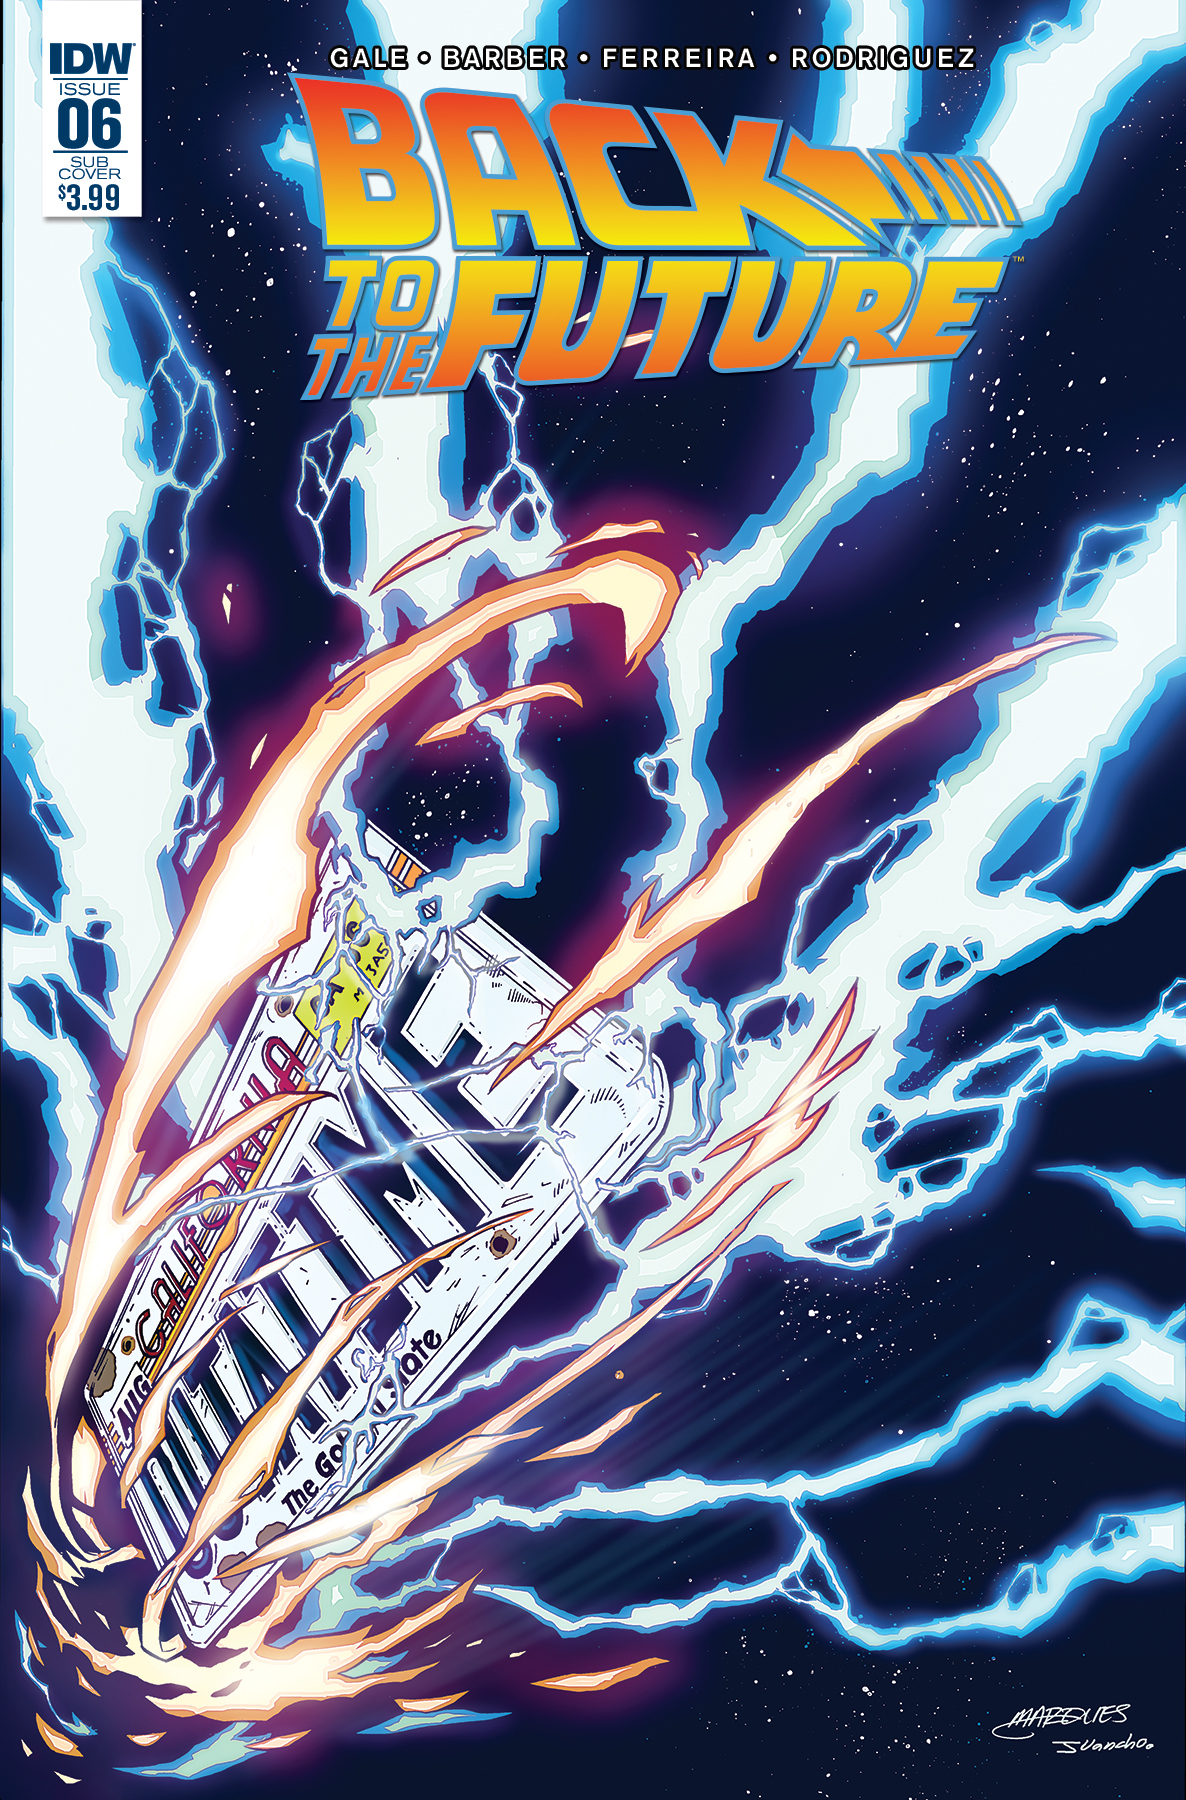 Back to the Future #6 Cover